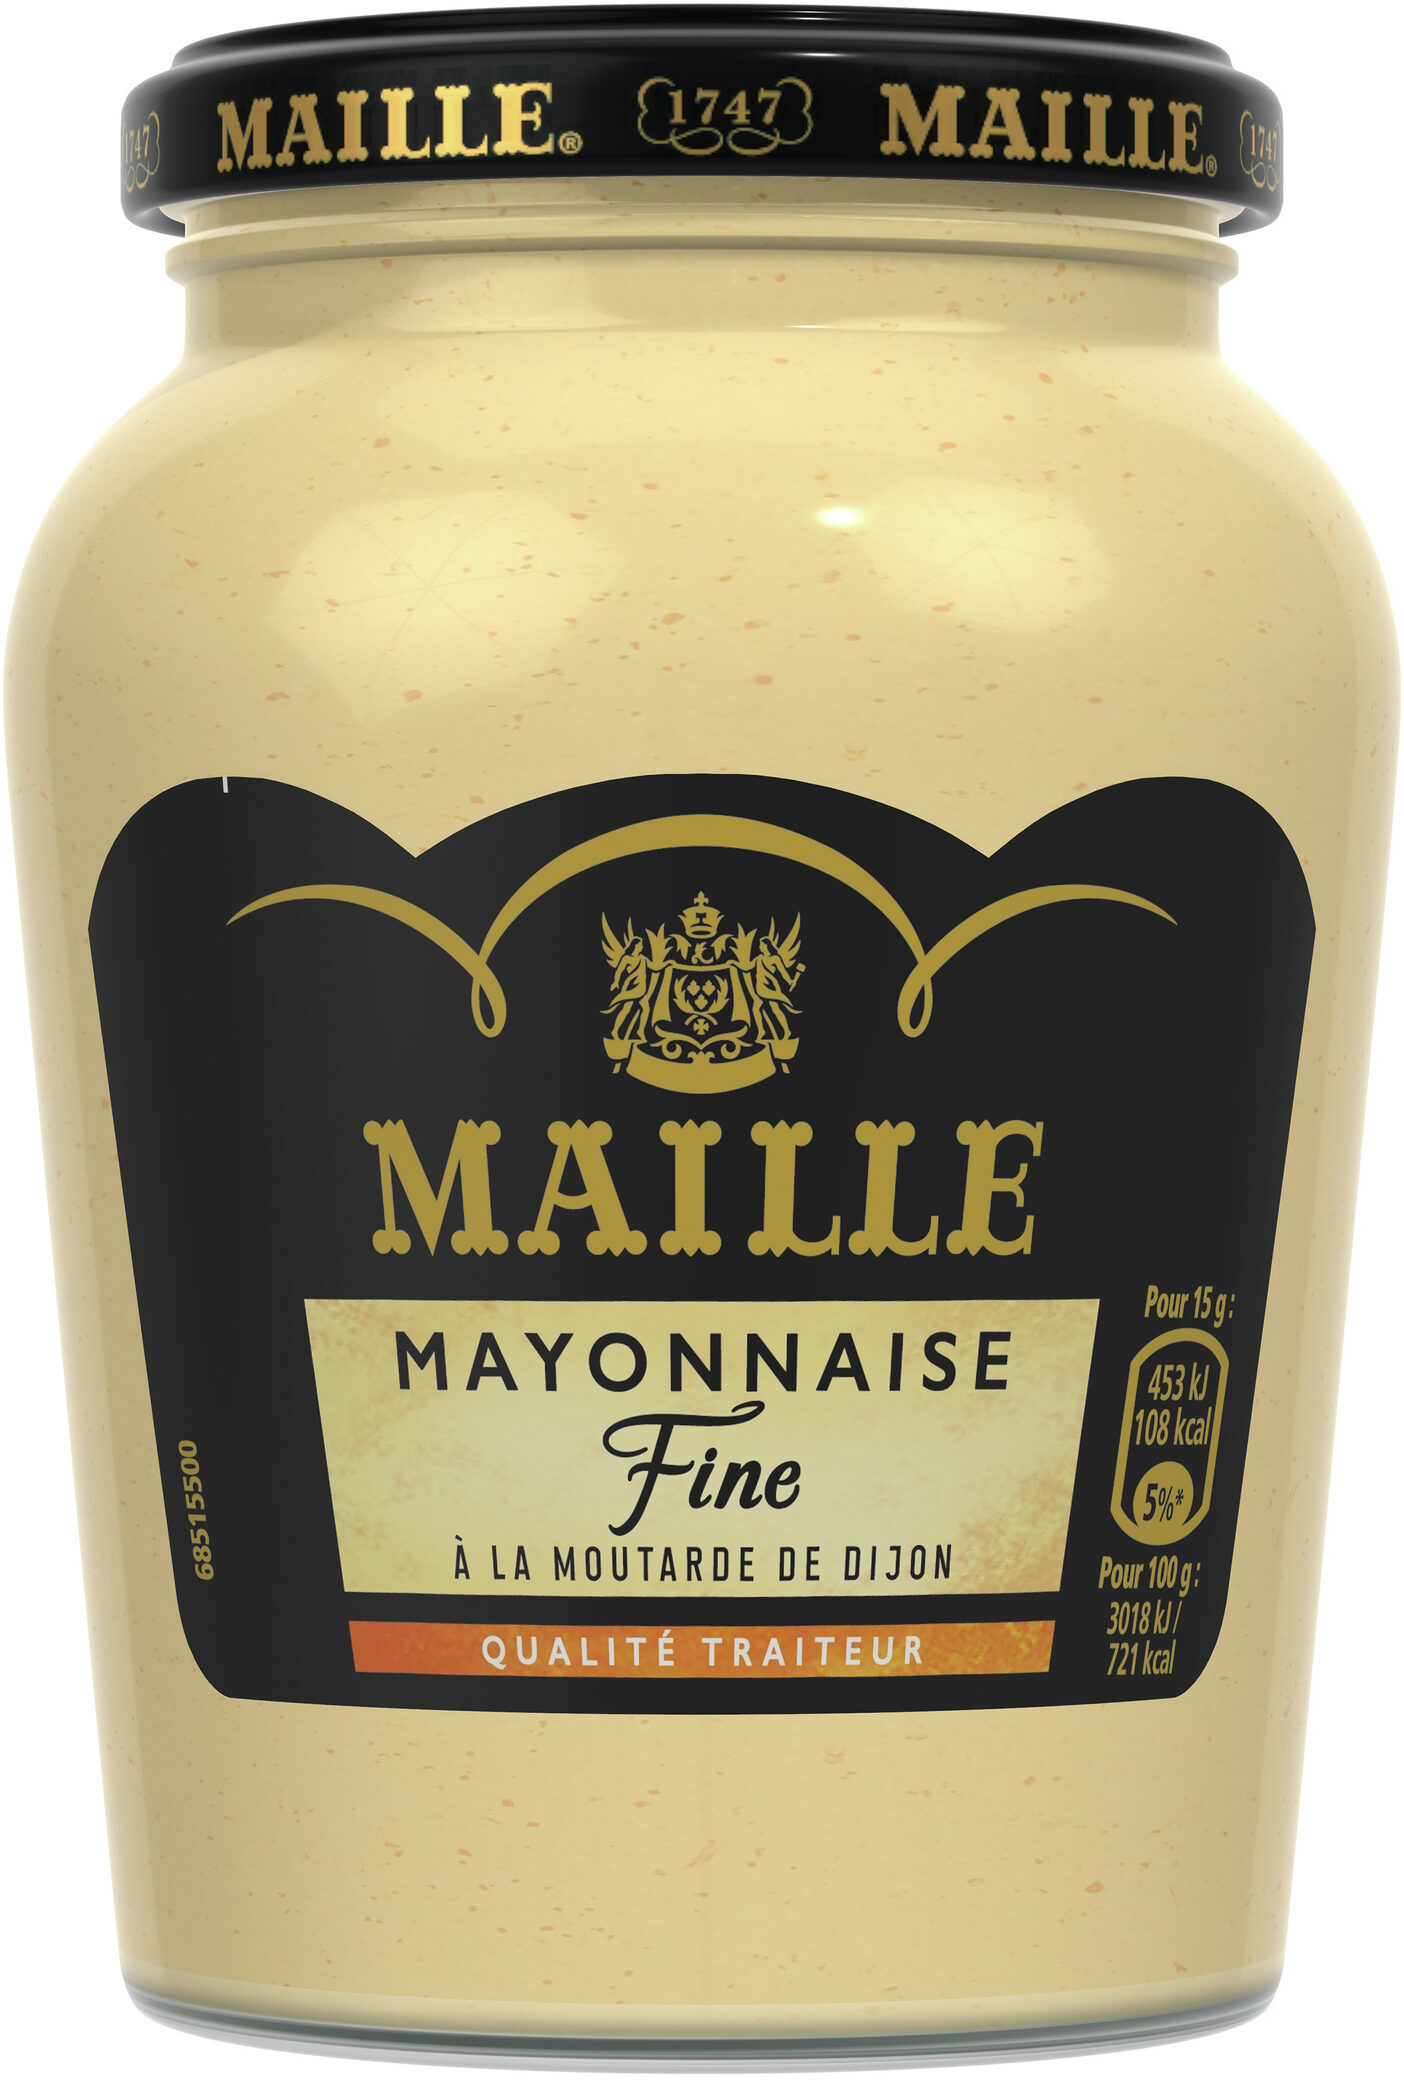 Maille Mayonnaise Fine Qualité Traiteur Bocal - Product - fr